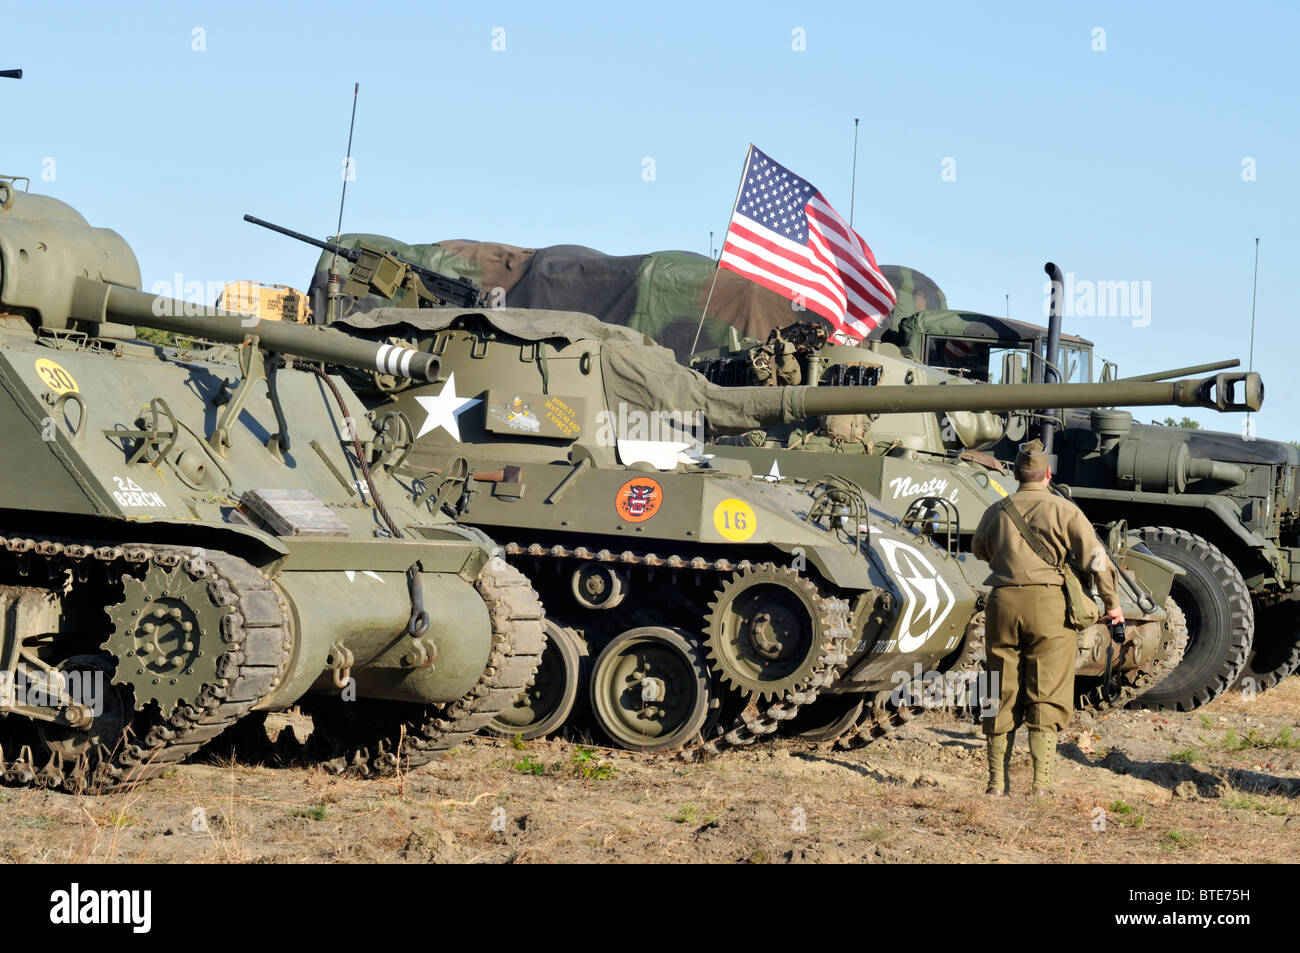 USA Military tanks and truck with soldier in a WWII uniform standing